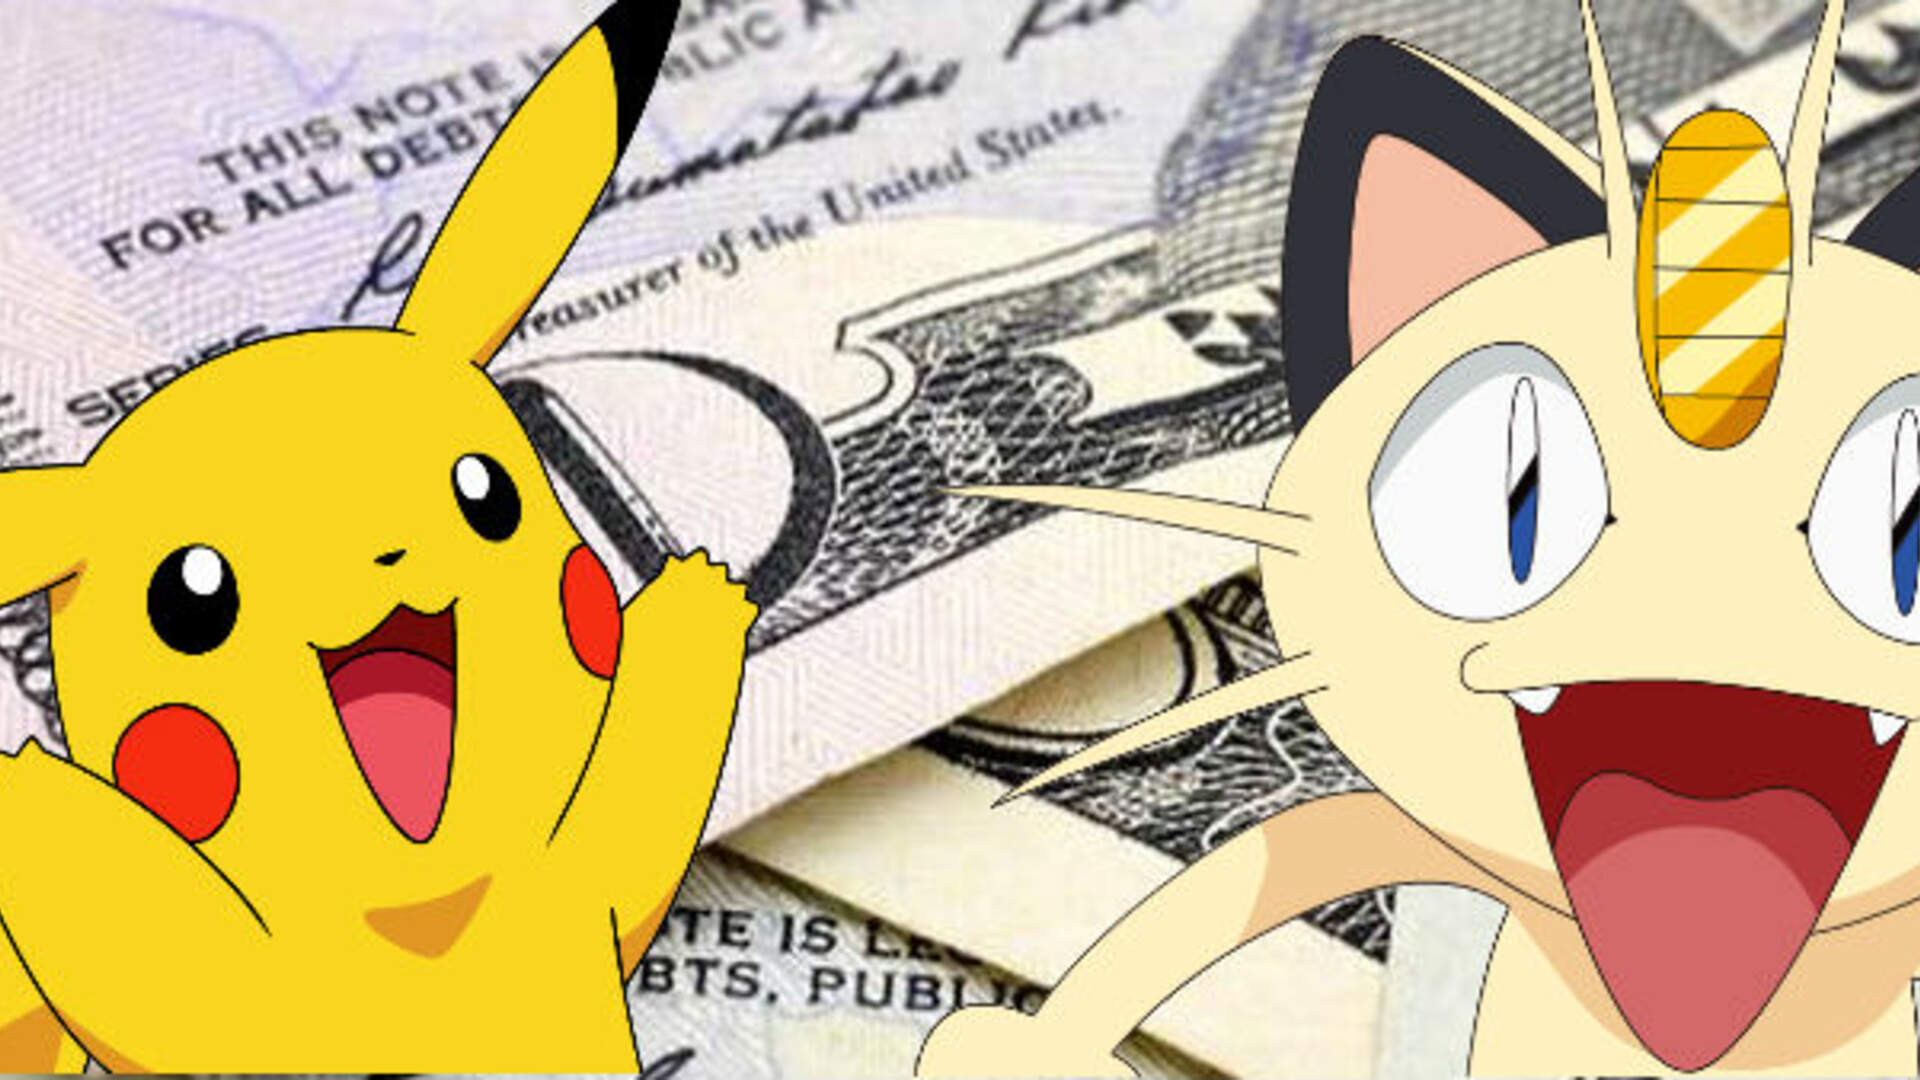 Pokemon Black Friday Deals Extravaganza - Toys, Games, Cards and Lots More